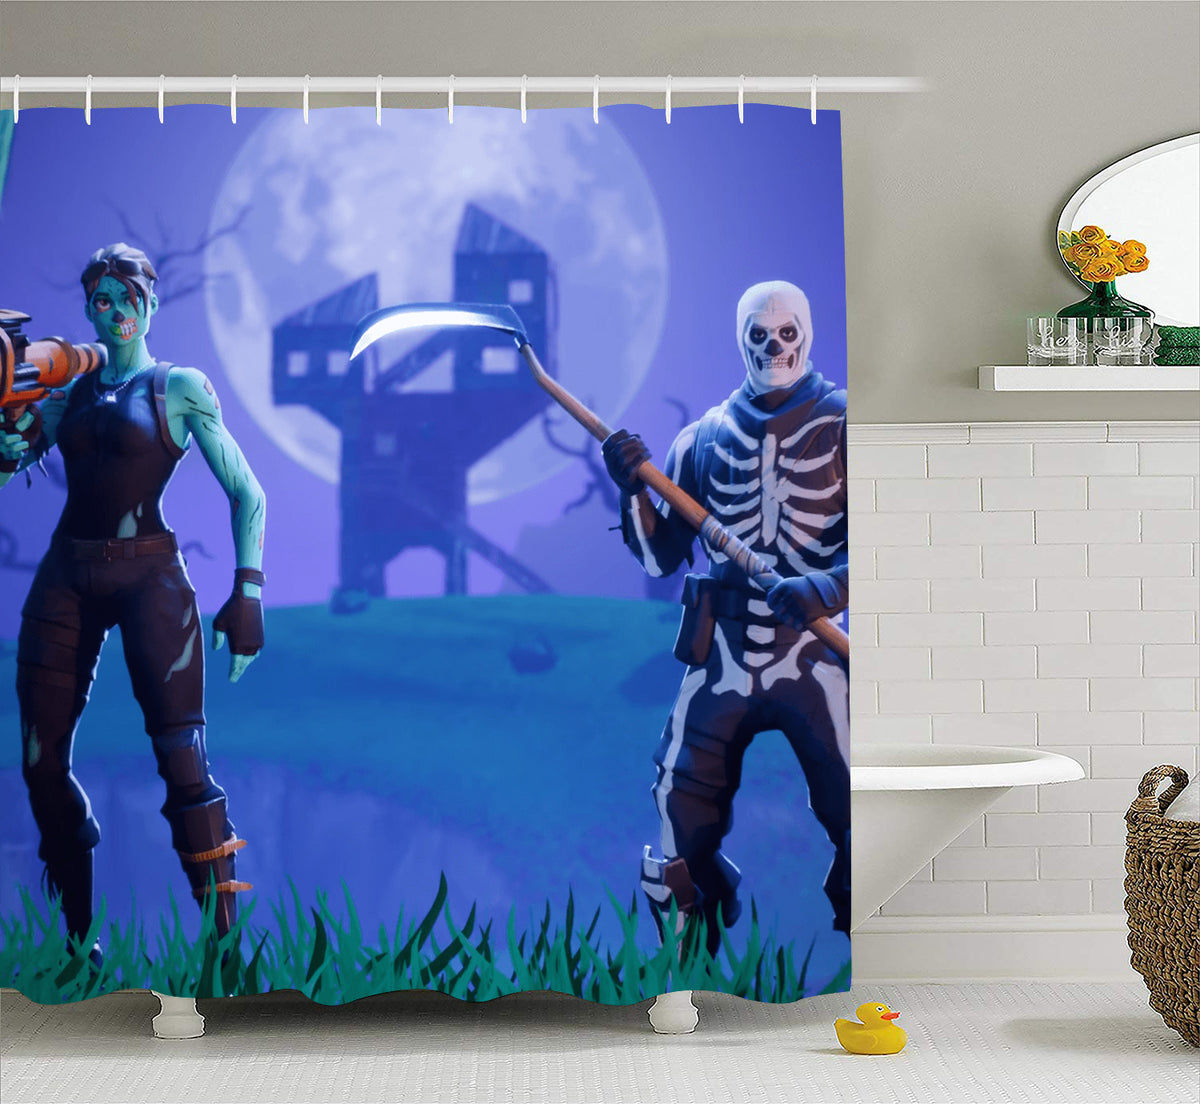 Skull Trooper Shower Curtain Extra Long Bath Decorations